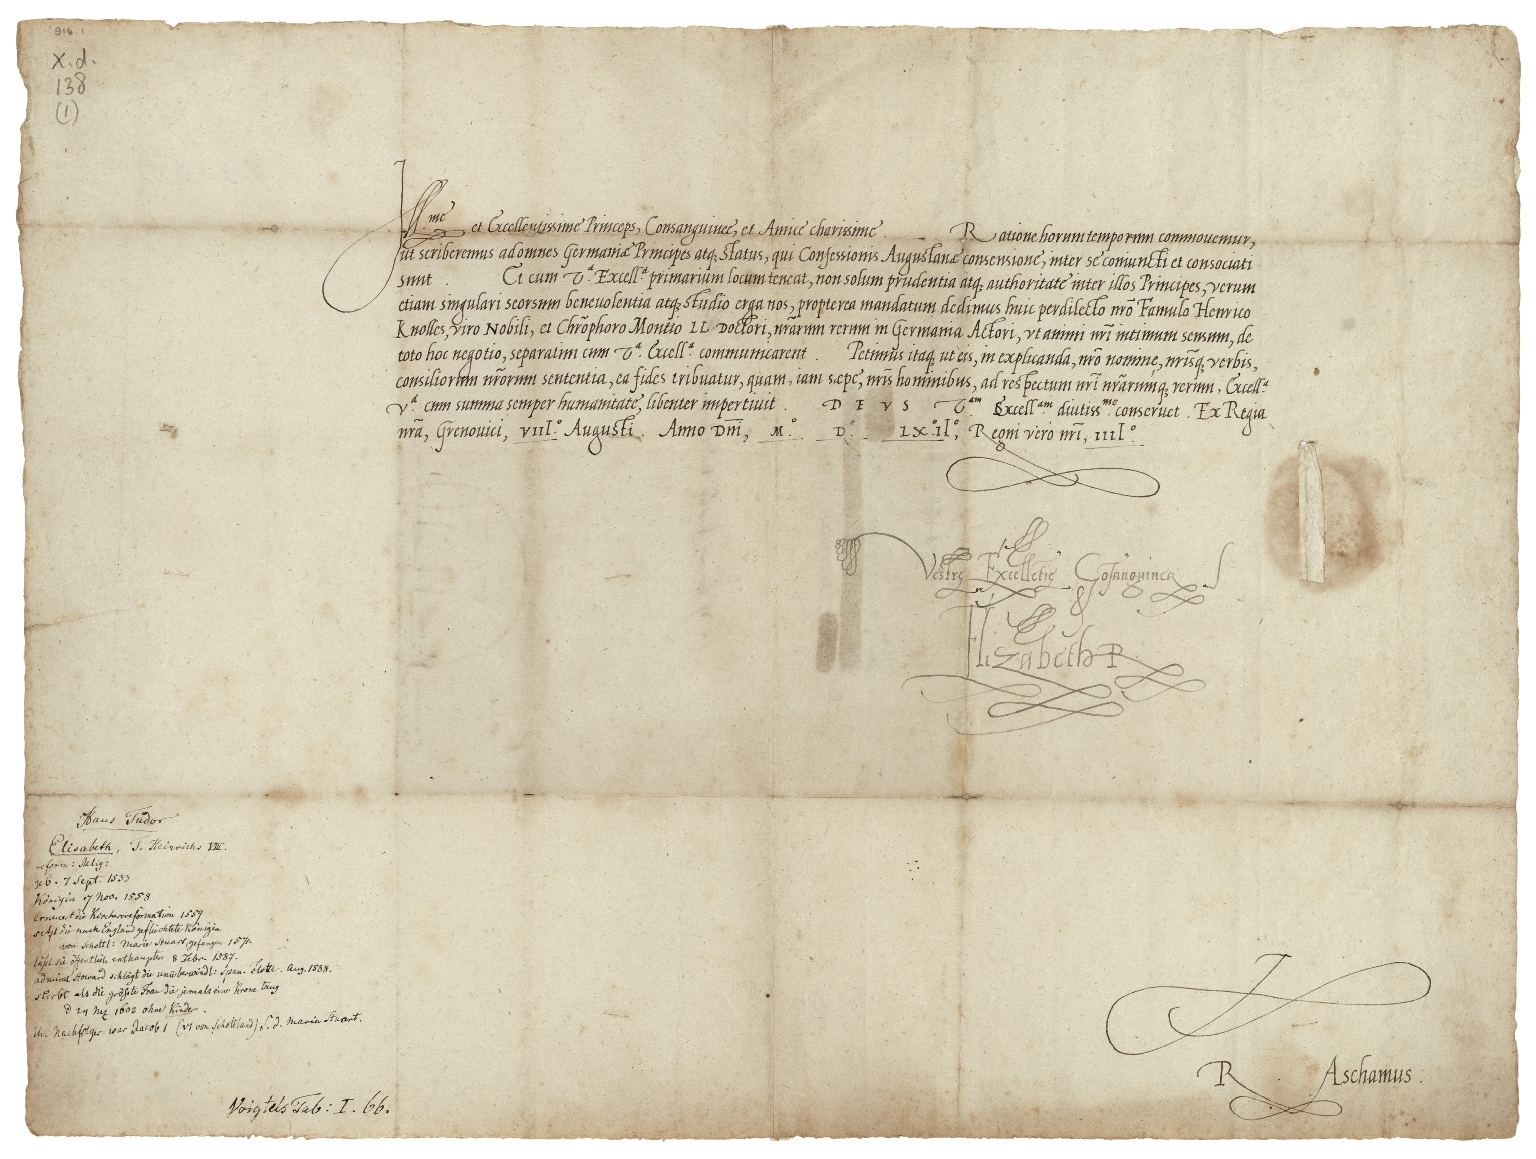 Letter signed from Elizabeth I, Queen of England, to Philip, Landgrave of Hesse